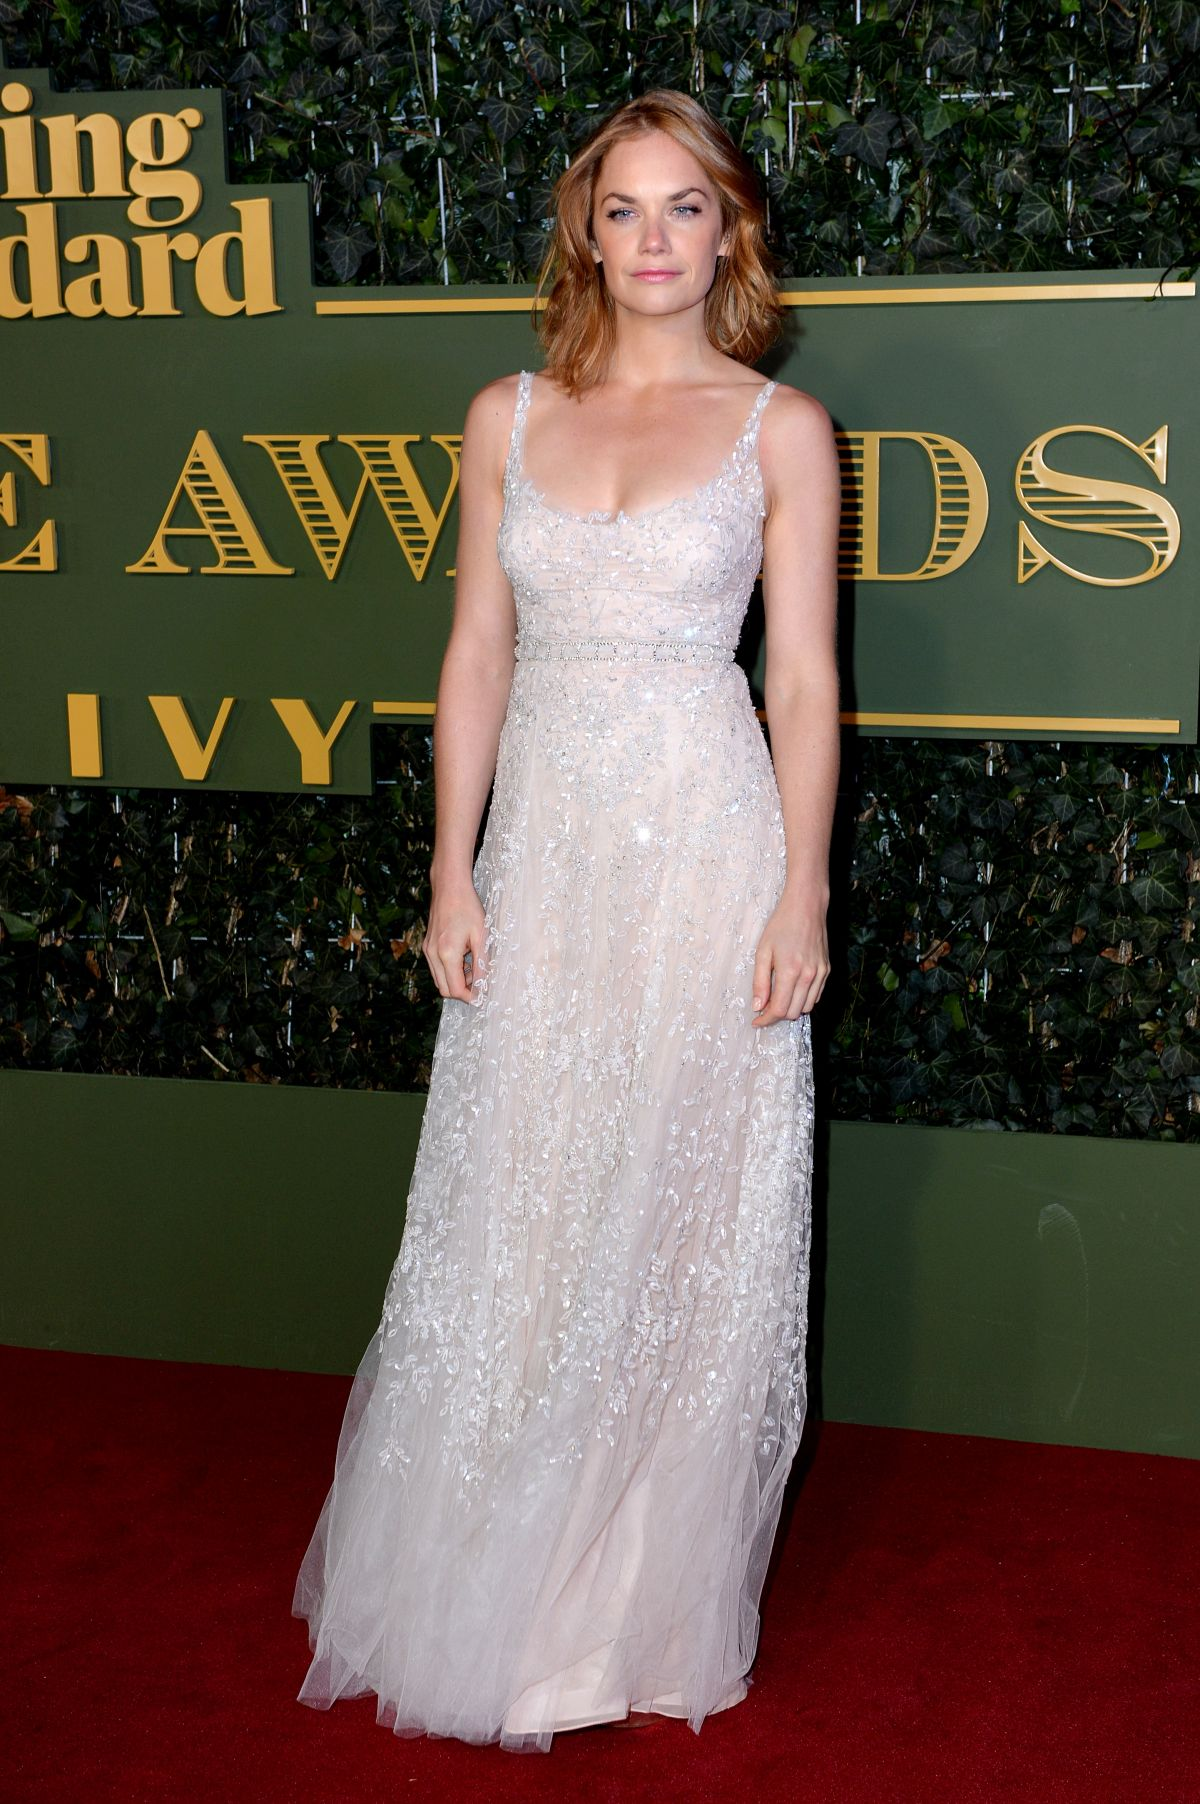 RUTH WILSON at Evening Standard Theatre Awards in London 11/22/2015